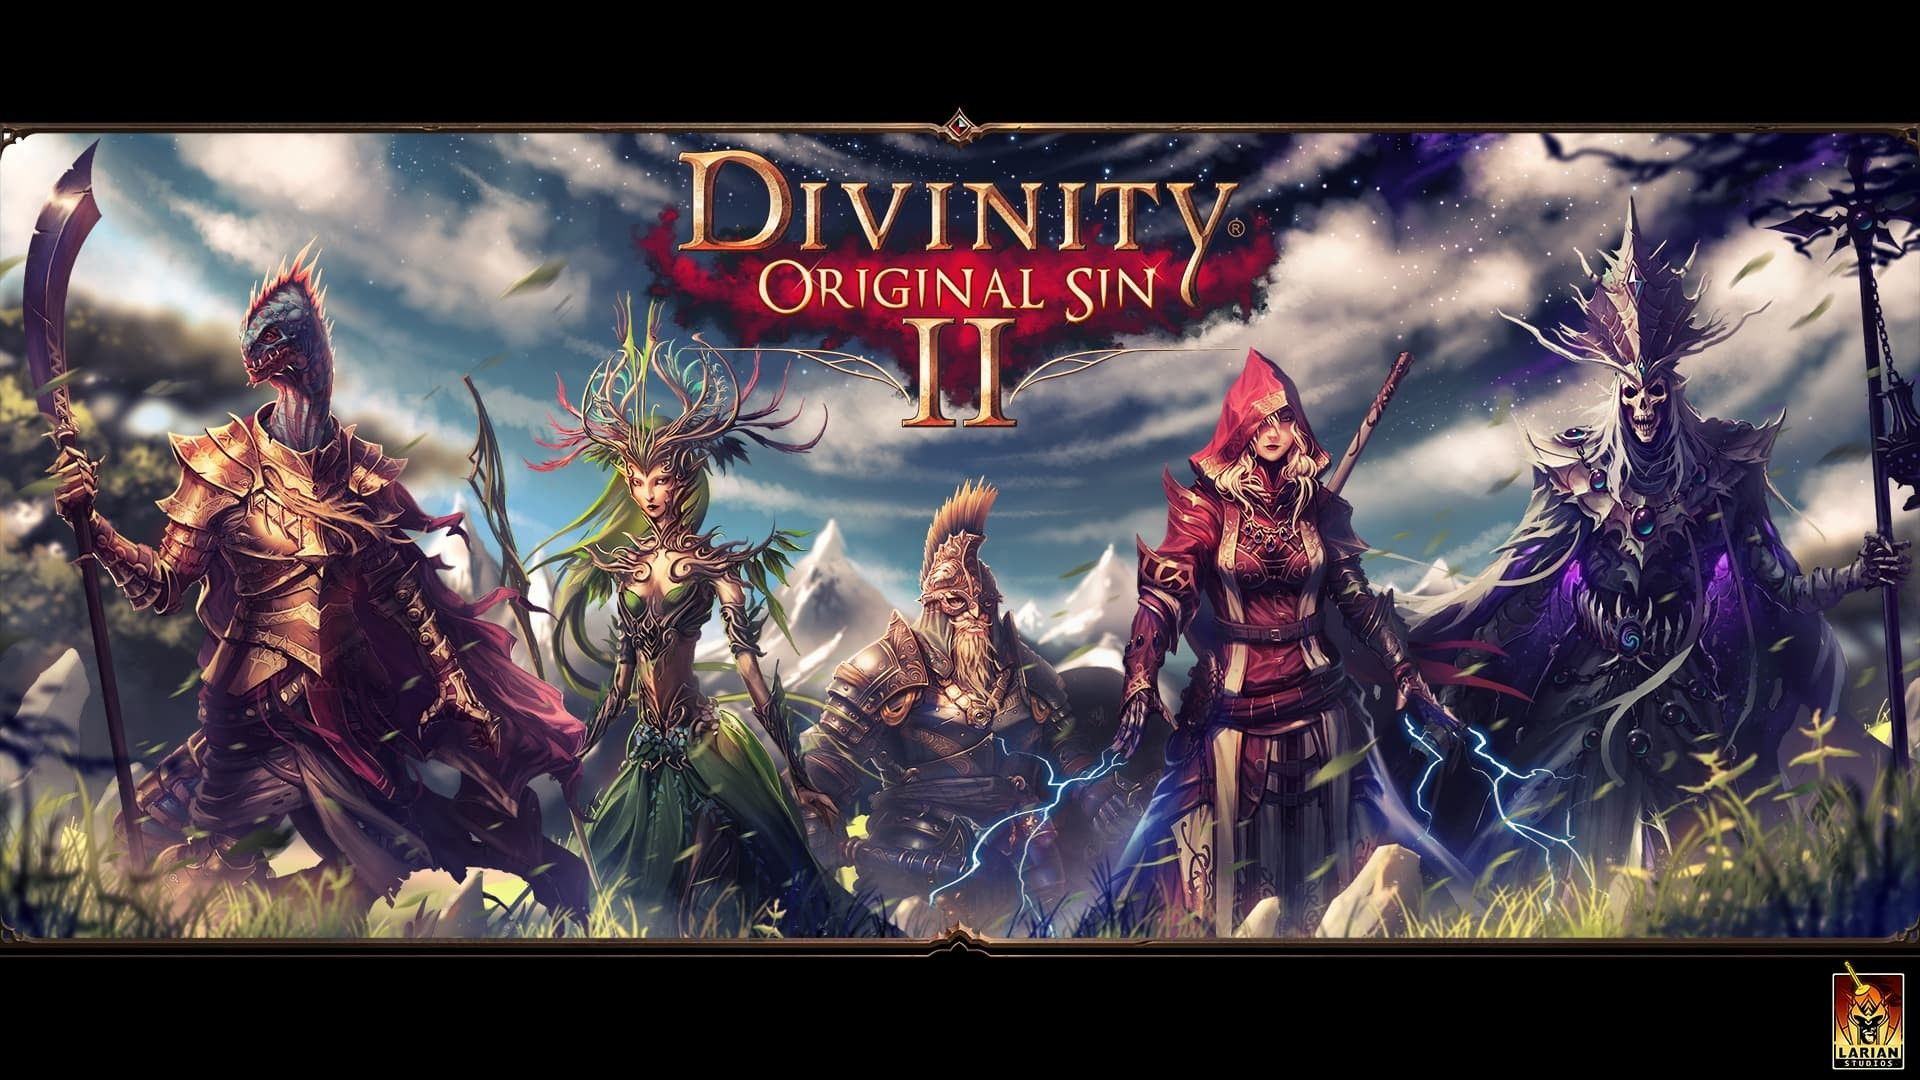 Divinity Original Sin 2 Wallpapers Posted By Samantha Tremblay